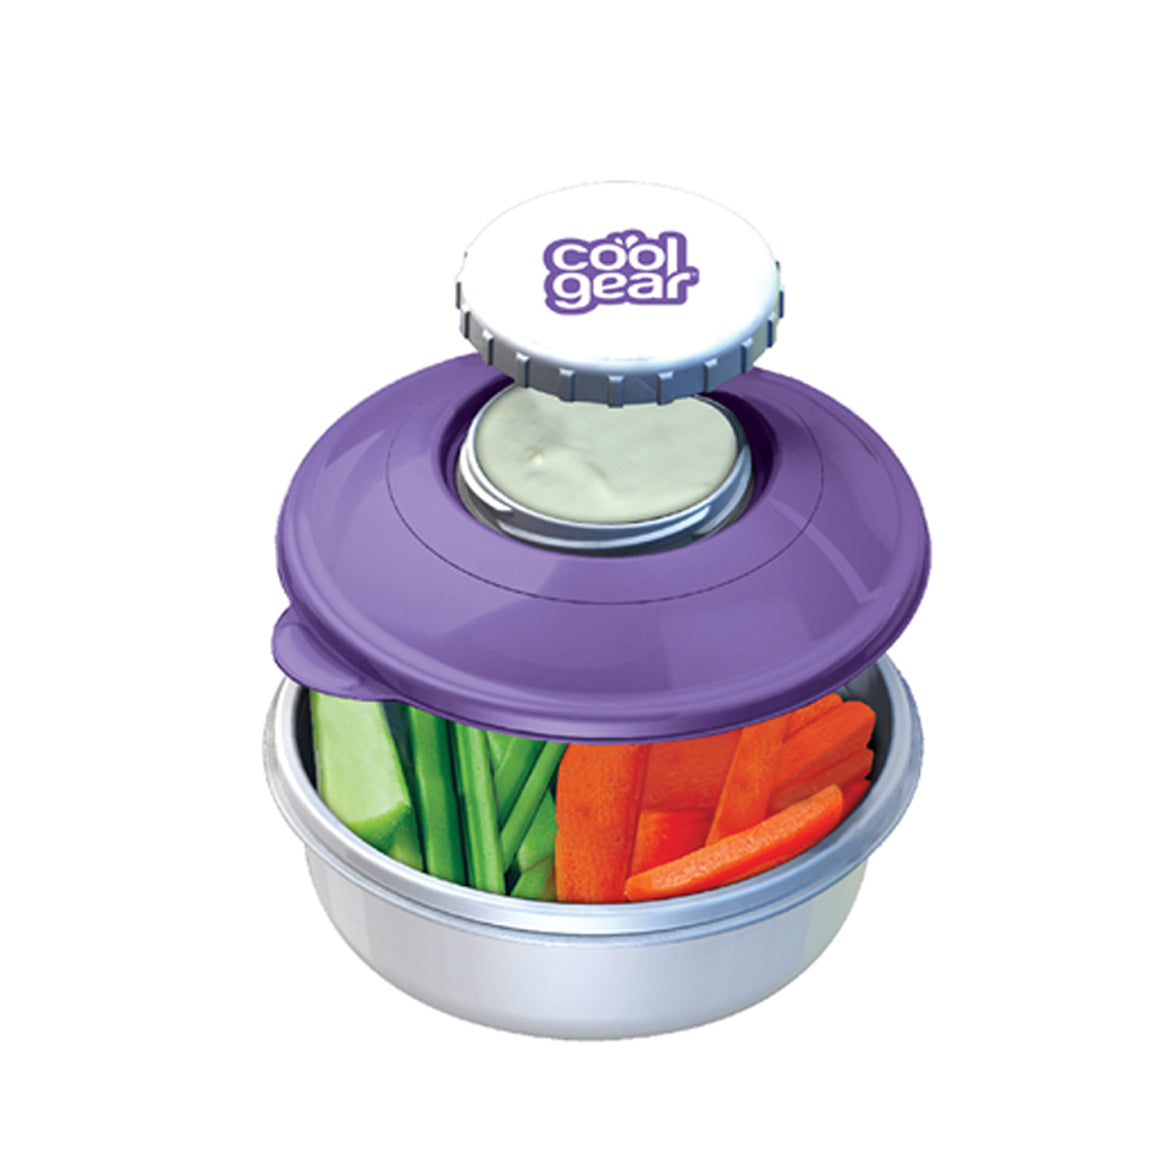 Purple Snack N Dip Food Container at Cool Gear Food Containers